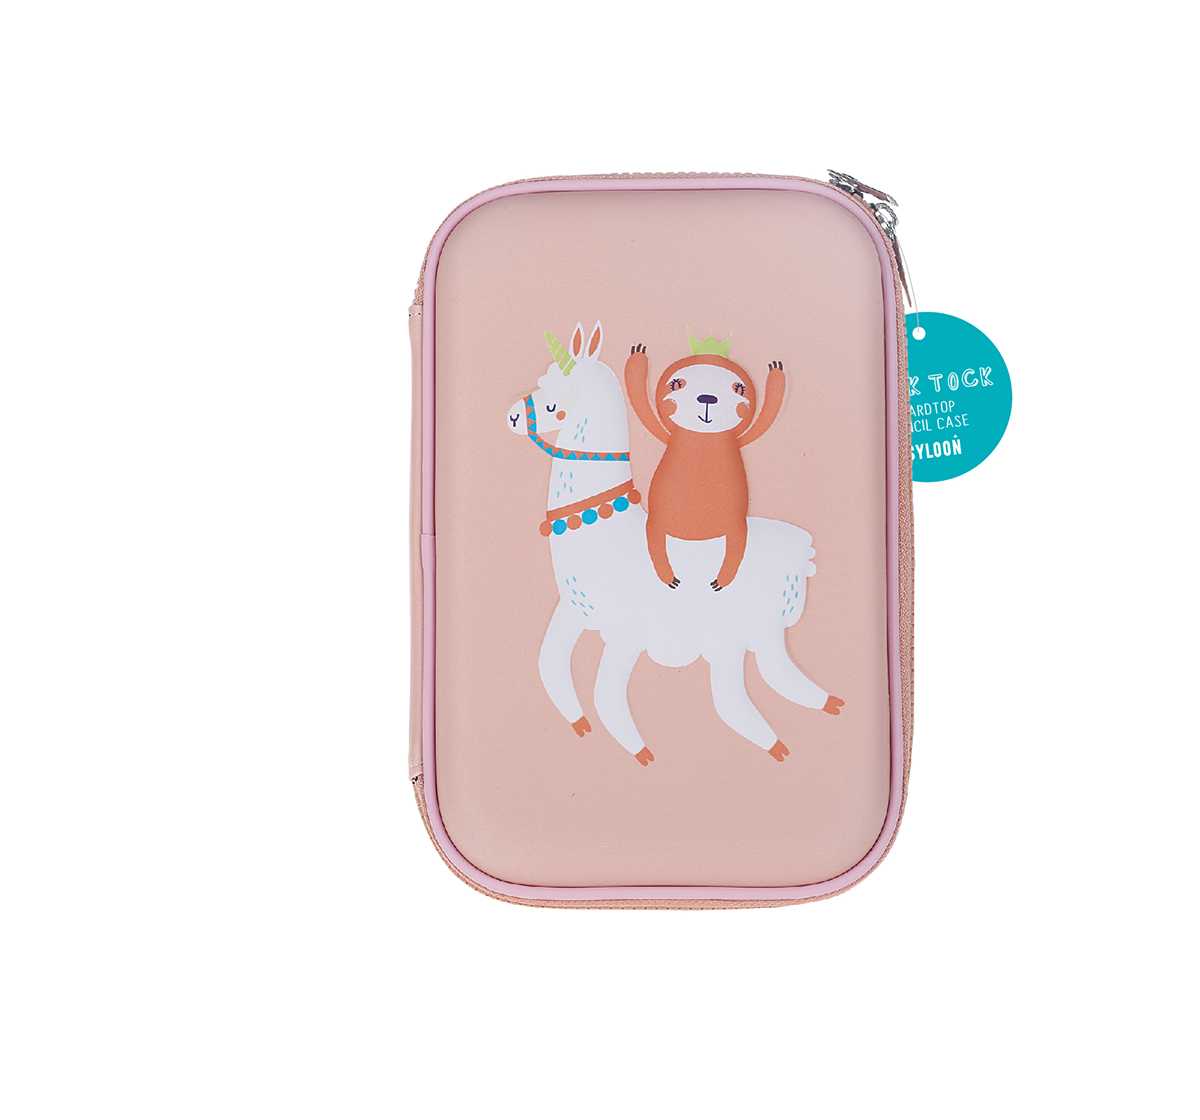 Syloon   Syloon Sloth Llama - Single Zipper Eva Pouch Pencil Pouches & Boxes for Kids age 5Y+